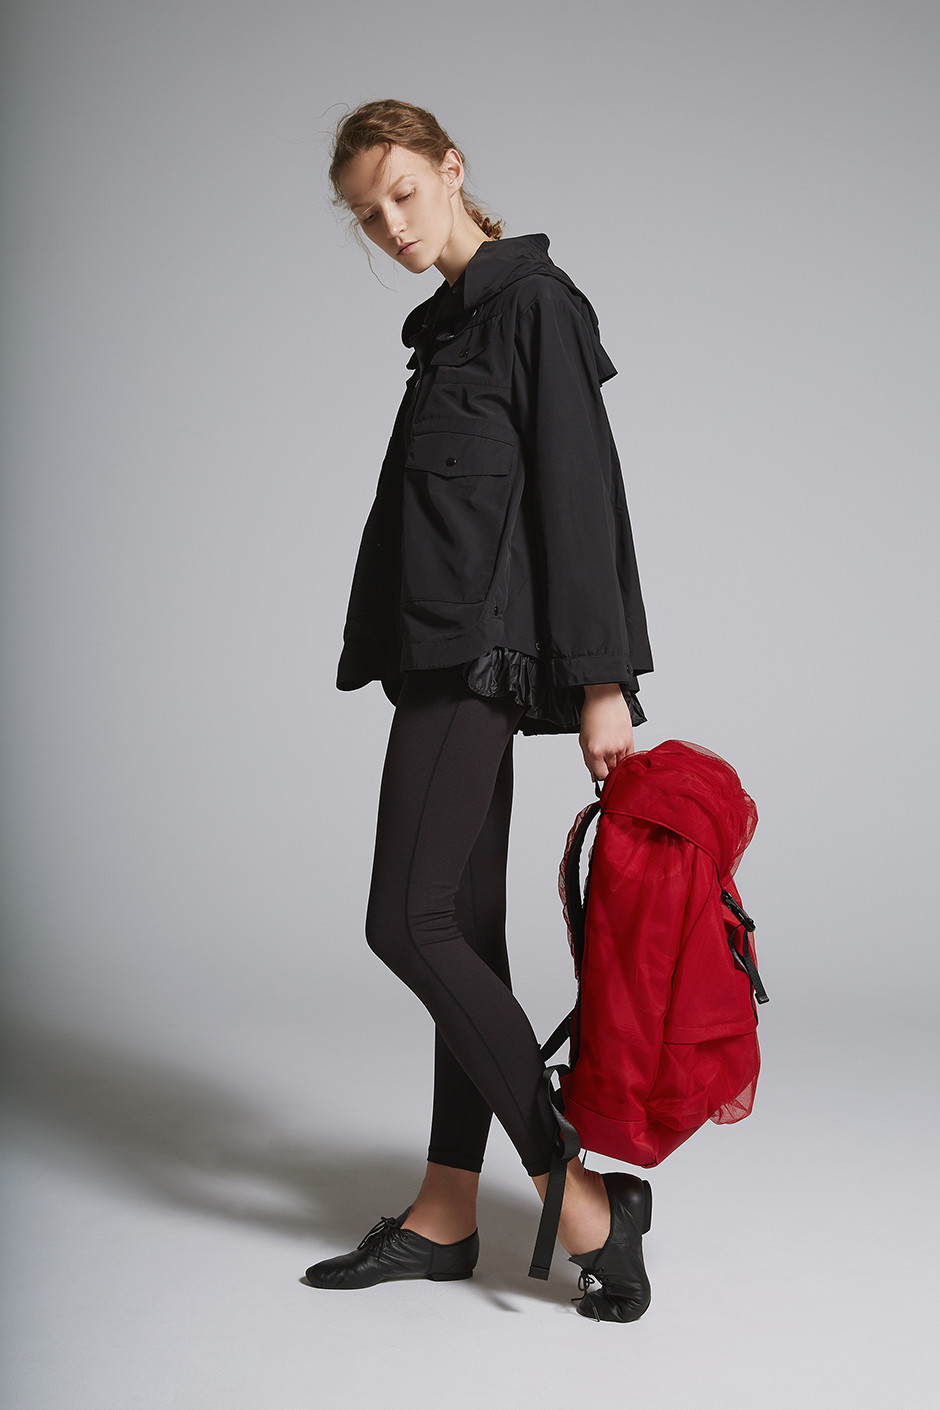 PLEATED JACKET DARK3731|ANY MOTION LONG DA25301|TULLE DAY PACK DARK9730